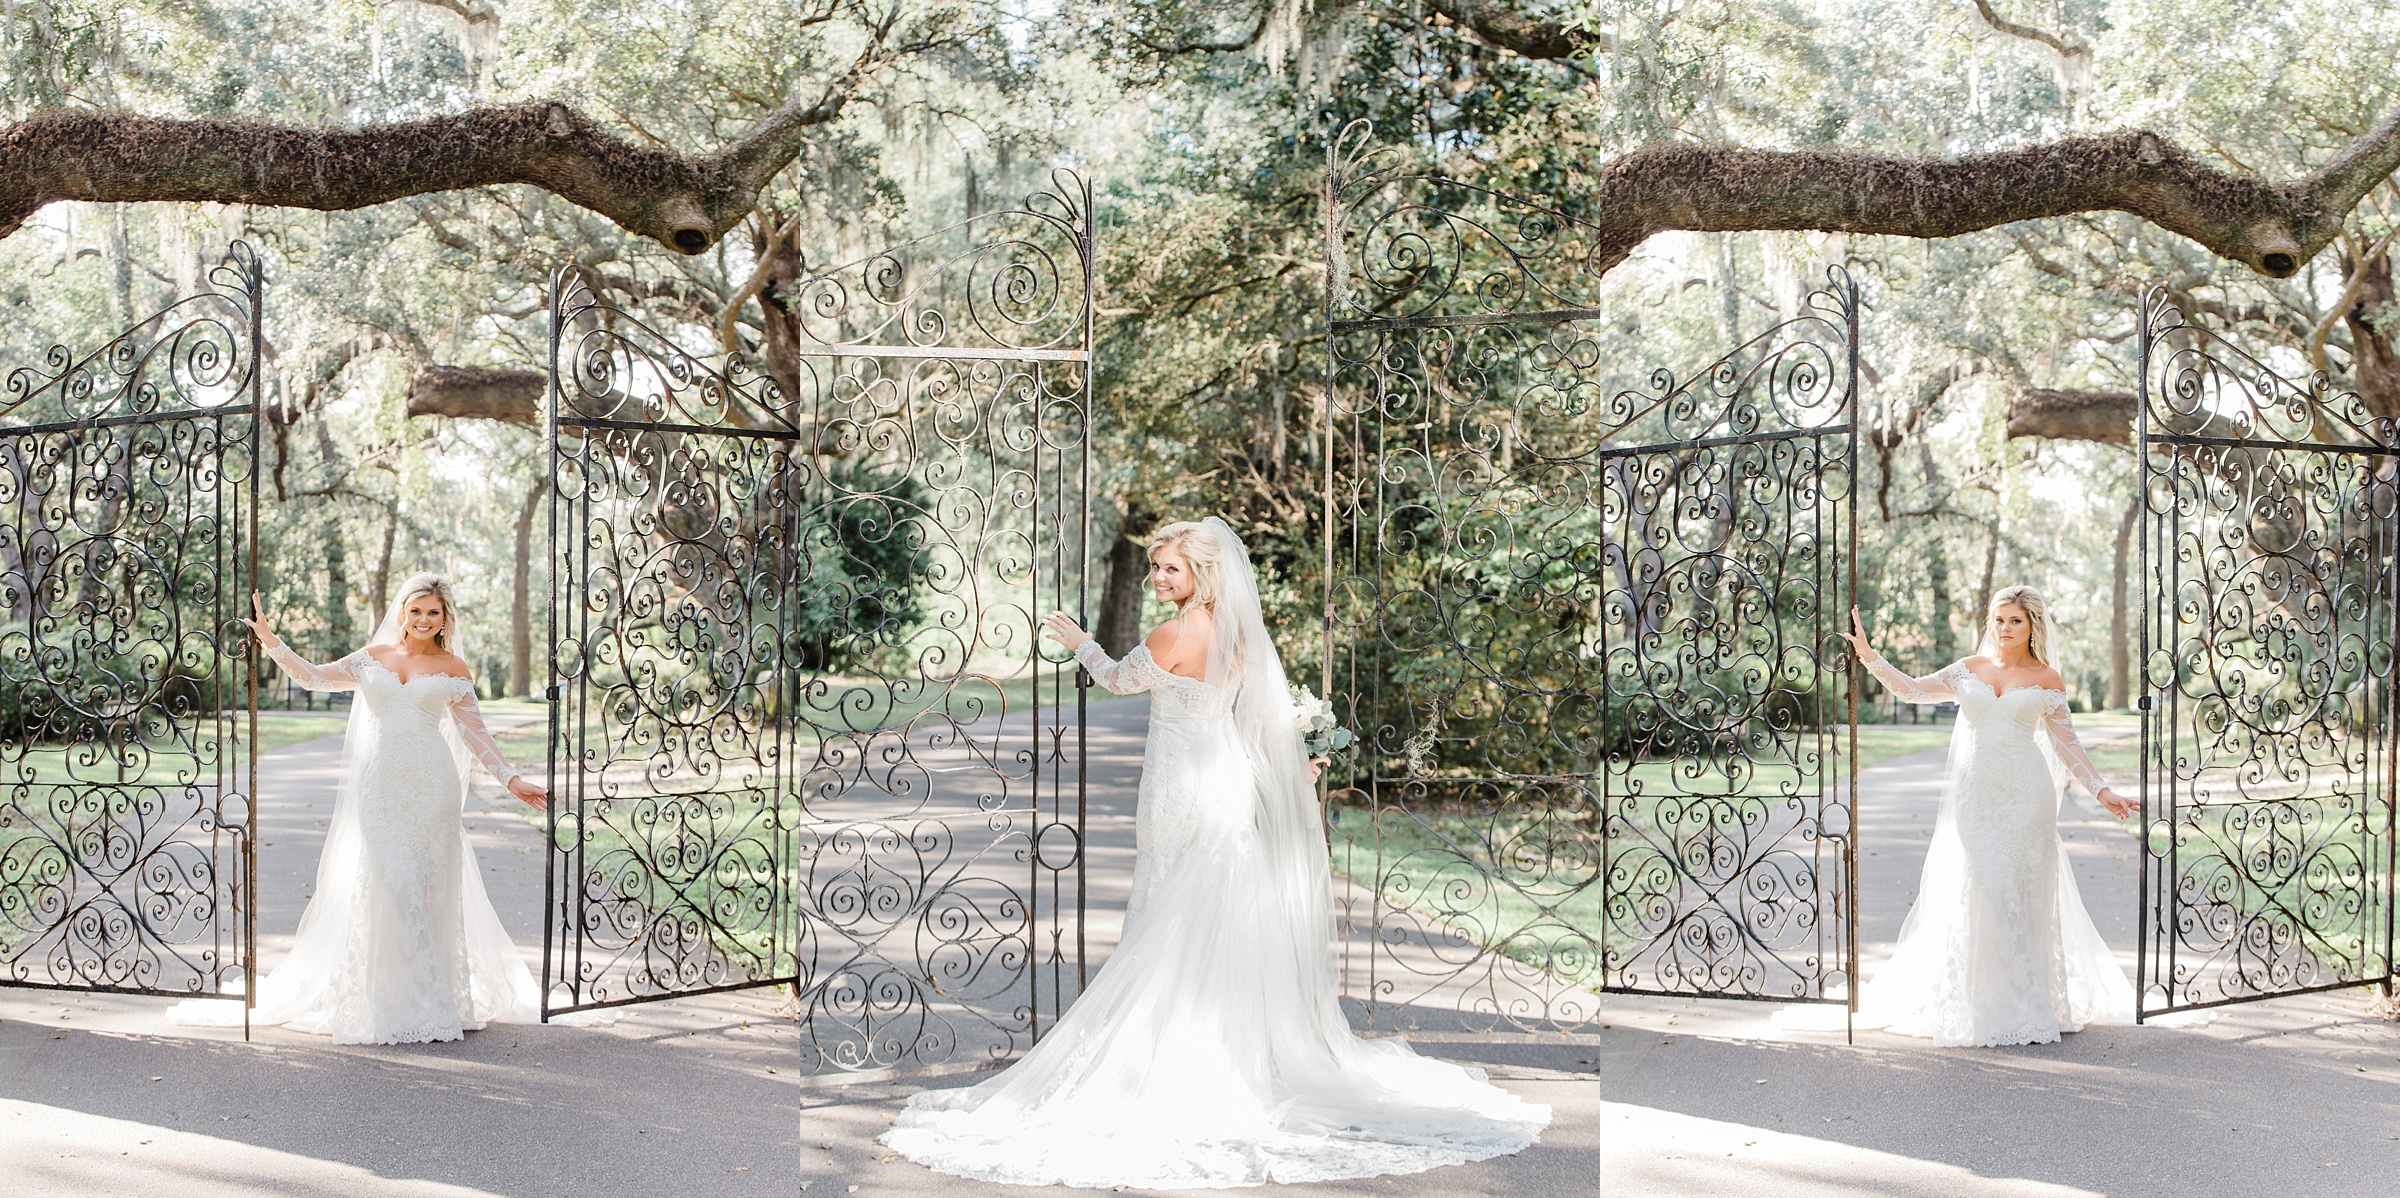 front gate legare waring house charles towne landing bridal portraits hybrid wedding photographer film photographer in SC